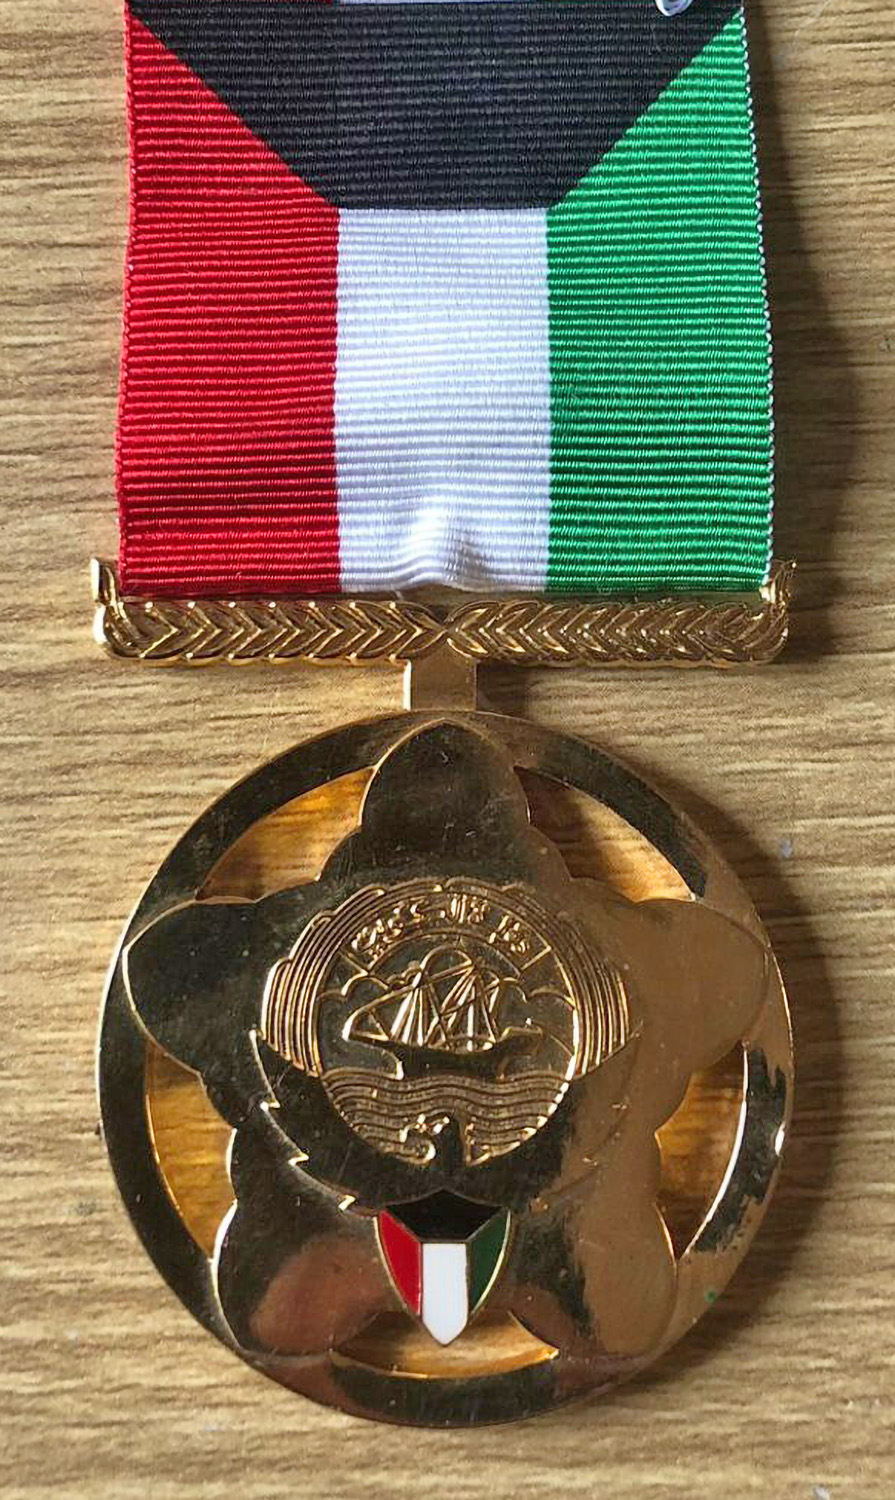 Second Grade medal